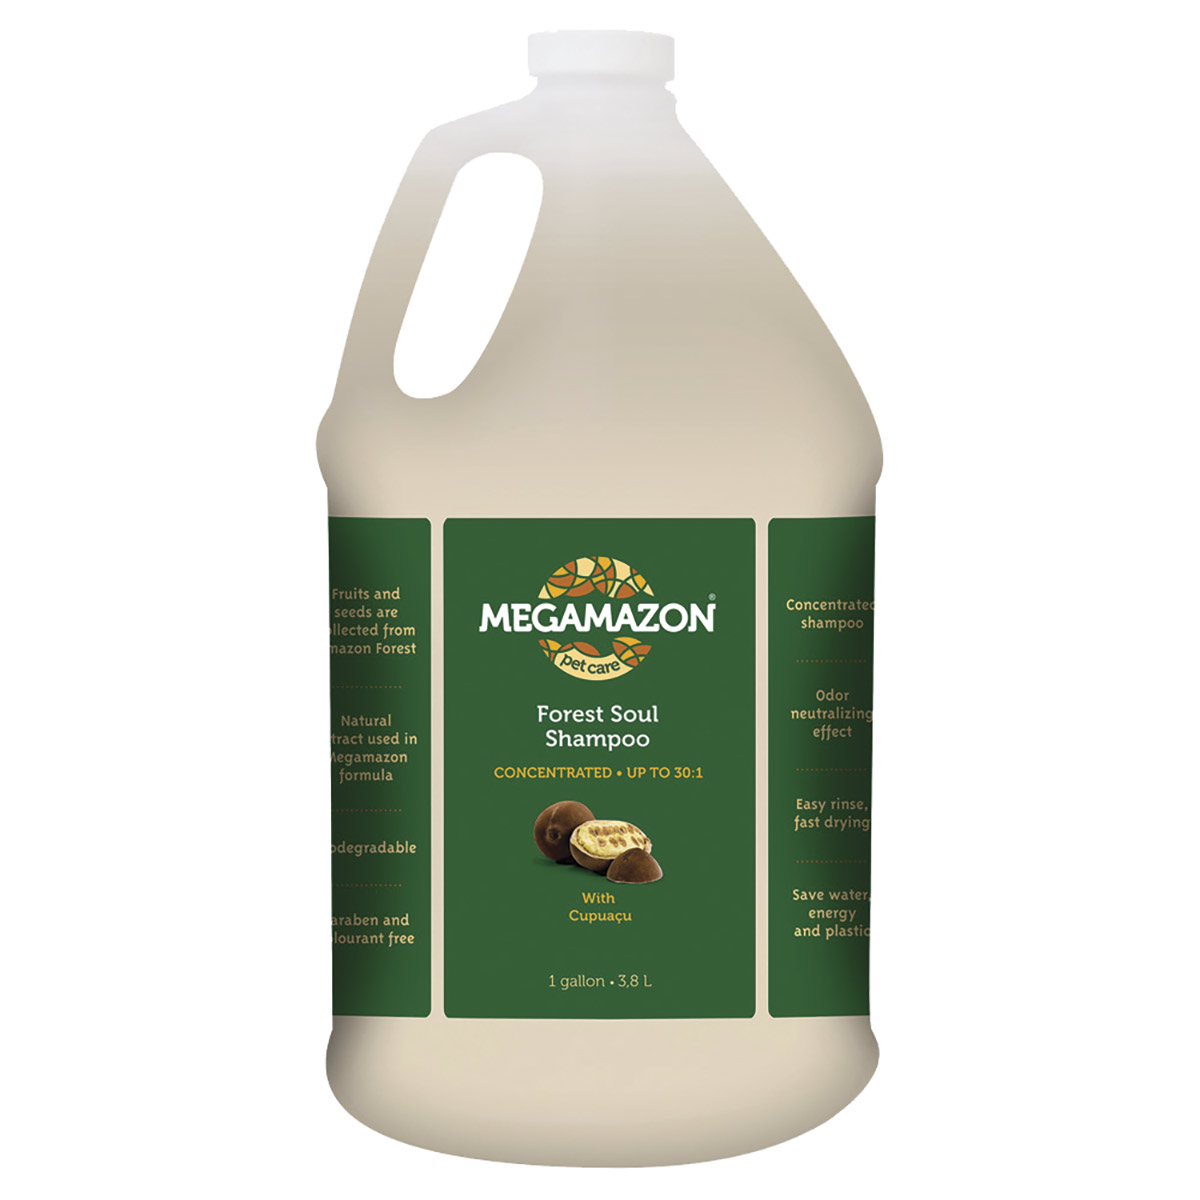 Buy Megamazon Forest Soul Pet Shampoo Gallon 30:1